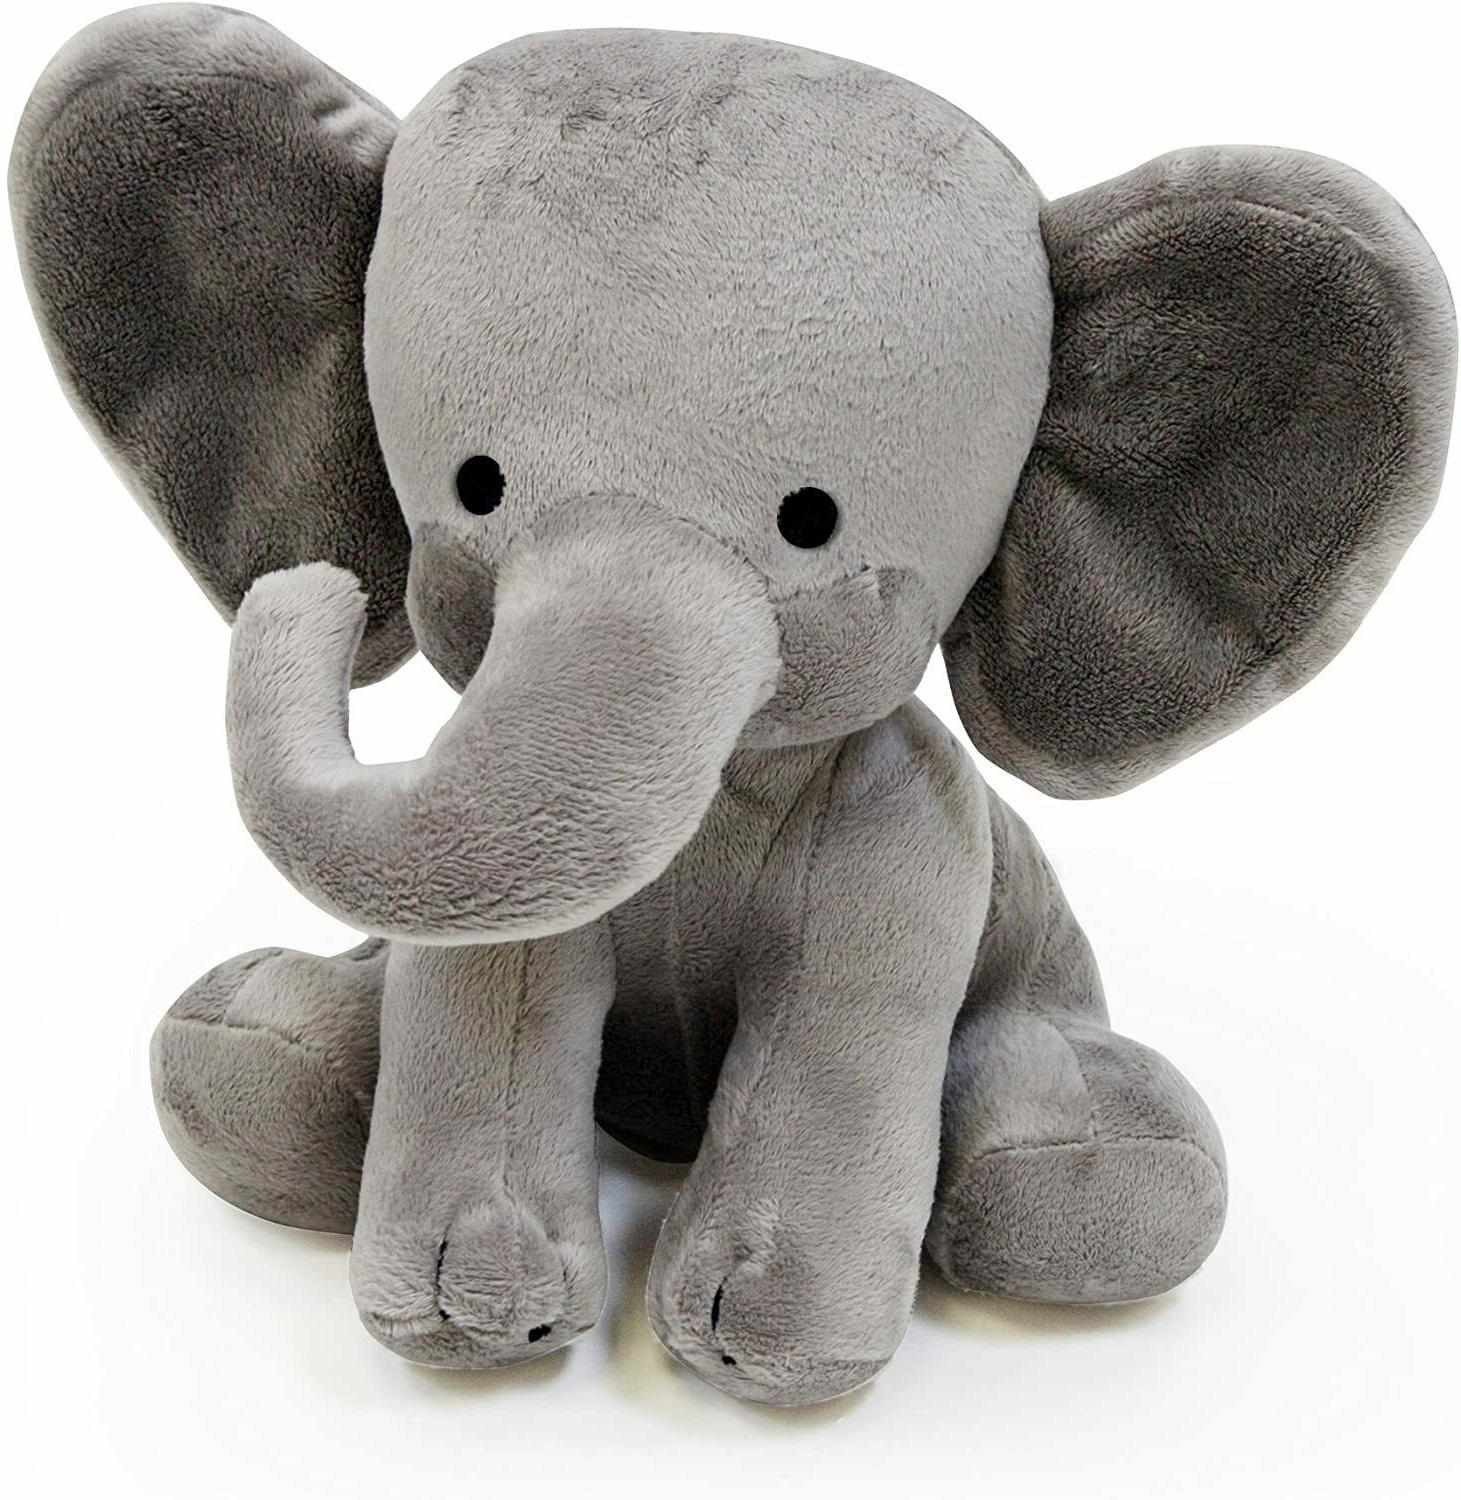 cute stuffed animal plush toy for baby